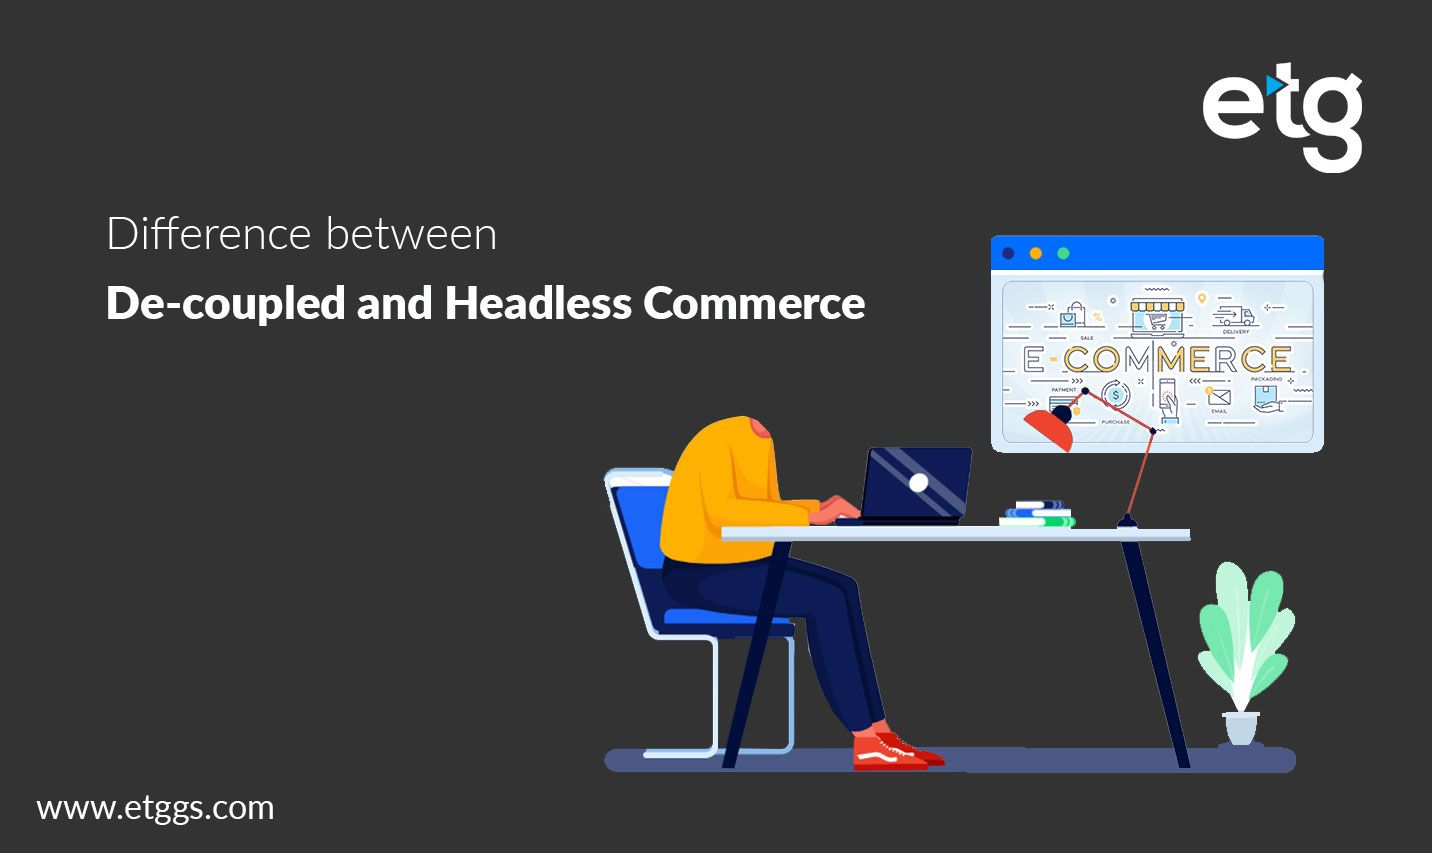 Decoupled and headless commerce solutions